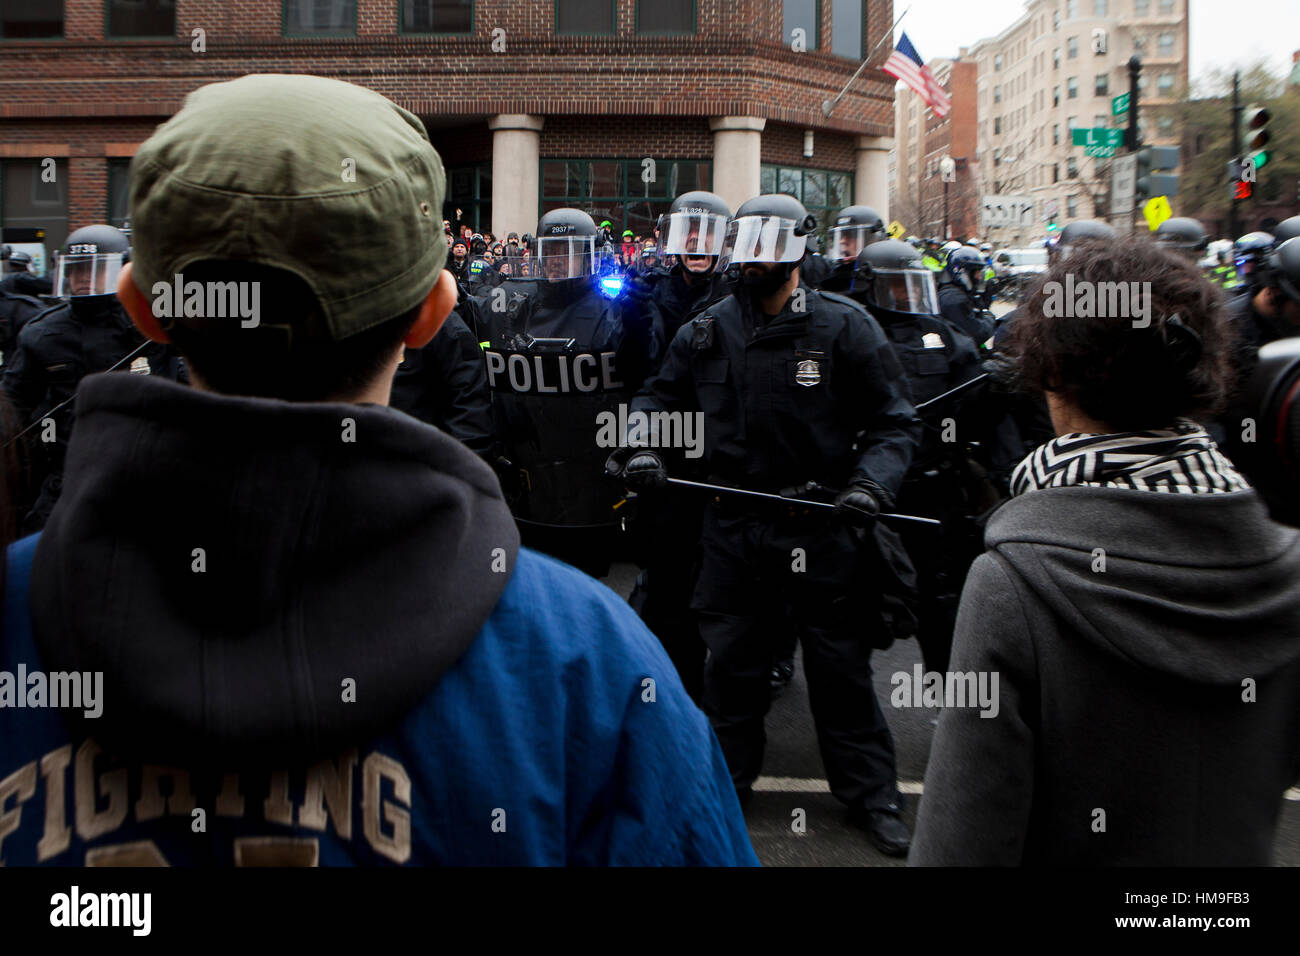 Metropolitan Police in riot gear standing in formation during Inauguration Day protests - Washington, DC USA - Stock Image